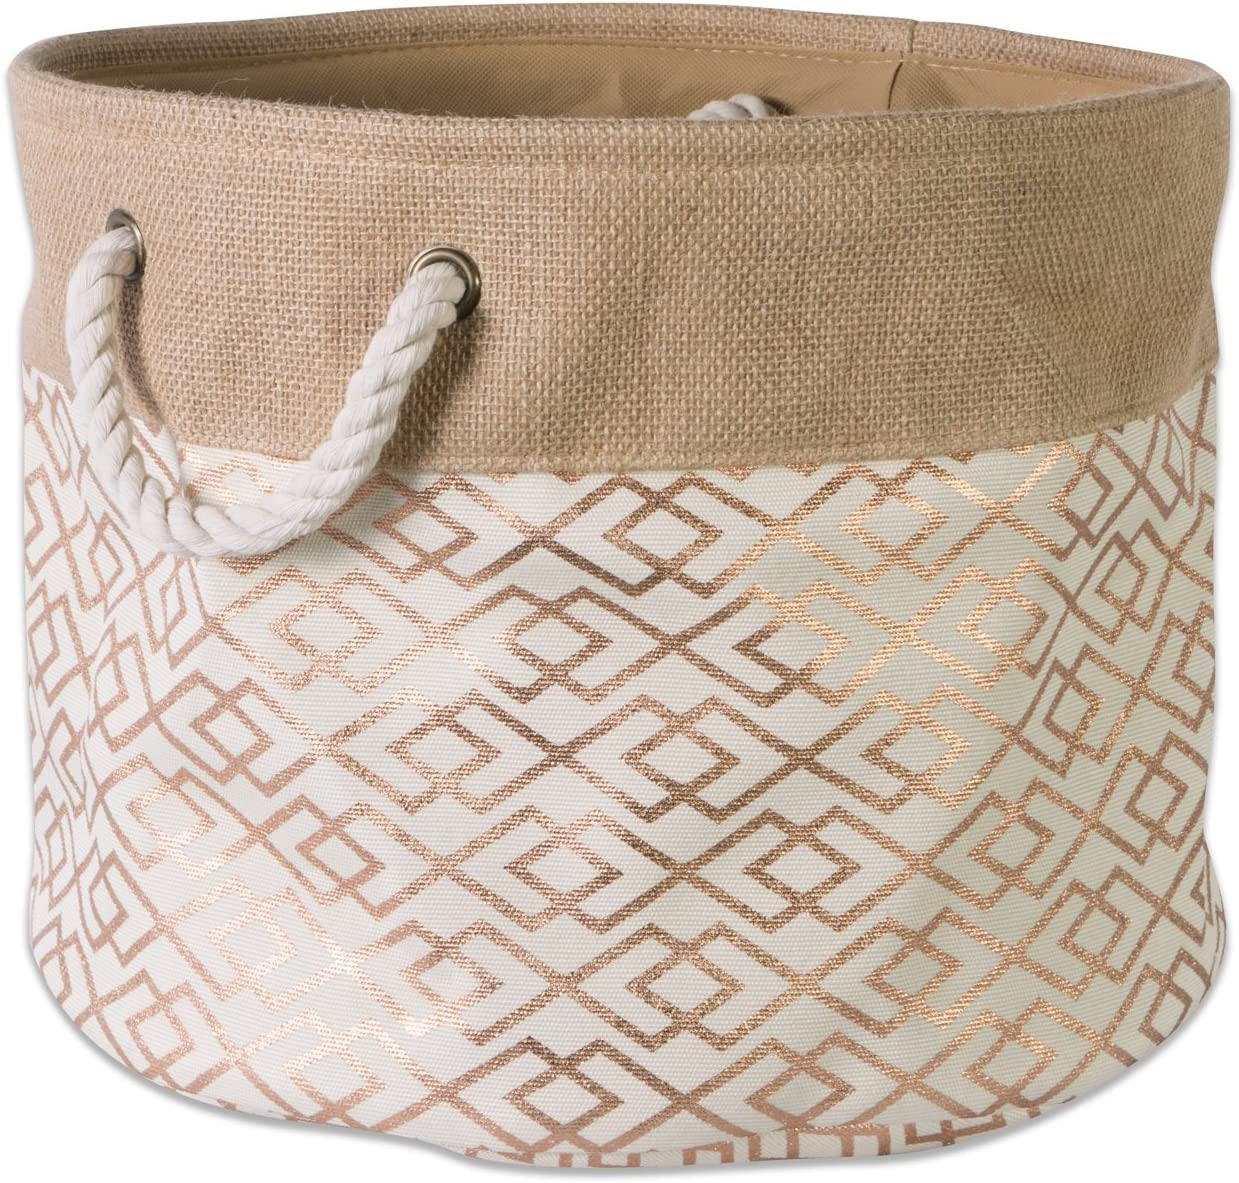 DII CAMZ37150 Collapsible Burlap Storage Basket or Bin with Durable Cotton Handles, Home Organizational Solution for Office, Bedroom, Closet, Toys, & Laundry (Medium Round - 15x12